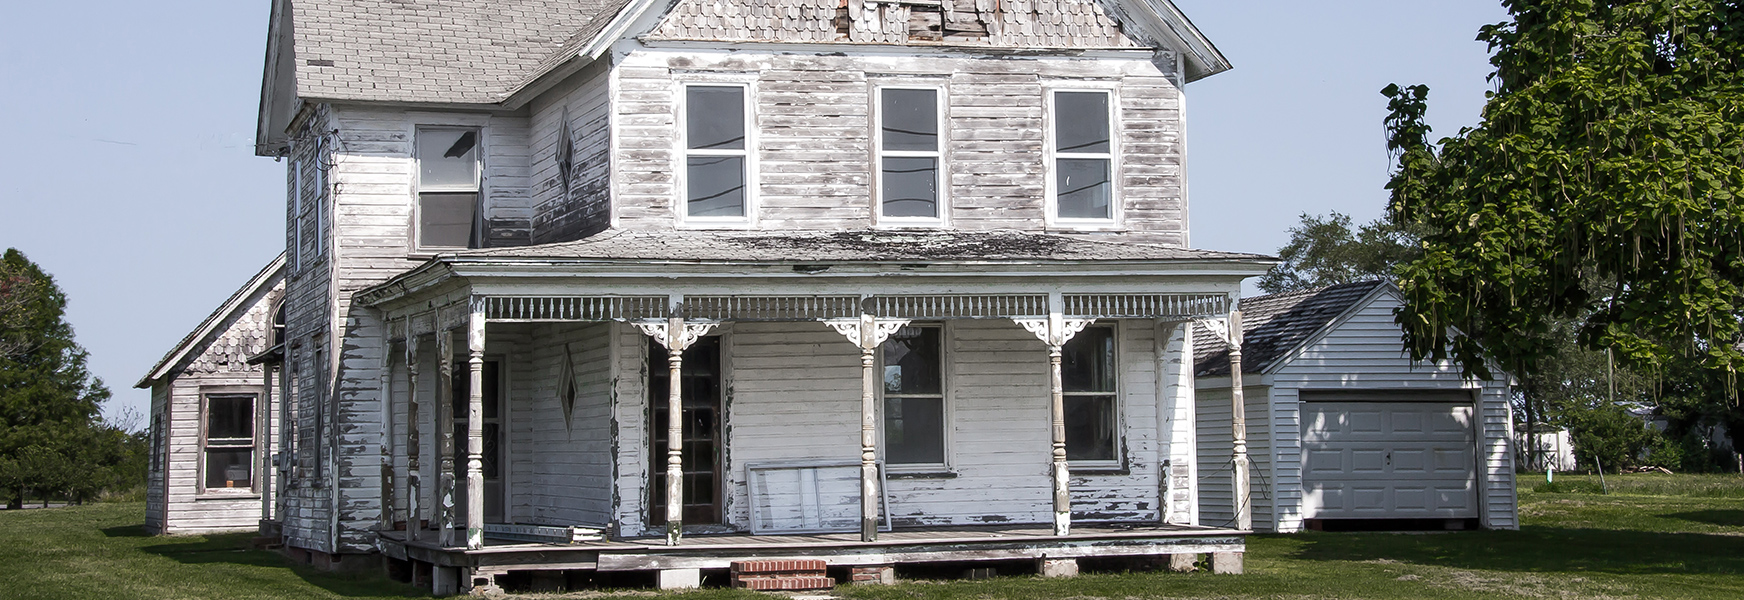 Old house with worn out paint